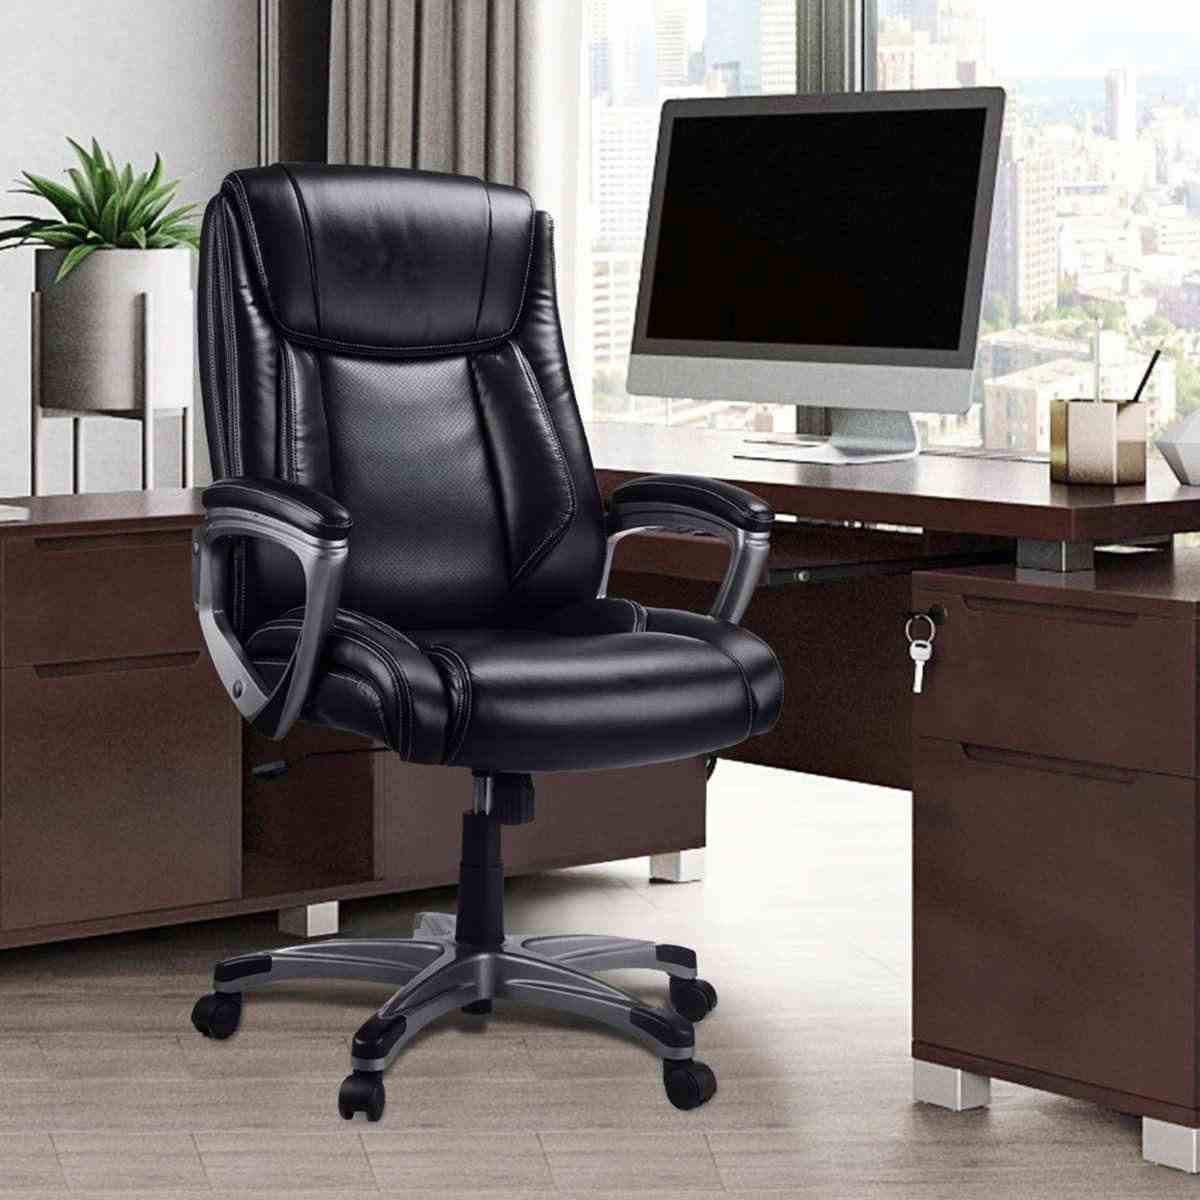 Special Offer Office Armchair Computer Boss Chair Ergonomic Play Chair Wcg Gaming Ergonomic Computer Chair Seat Reclining Chair Office Chairs Aliexpress